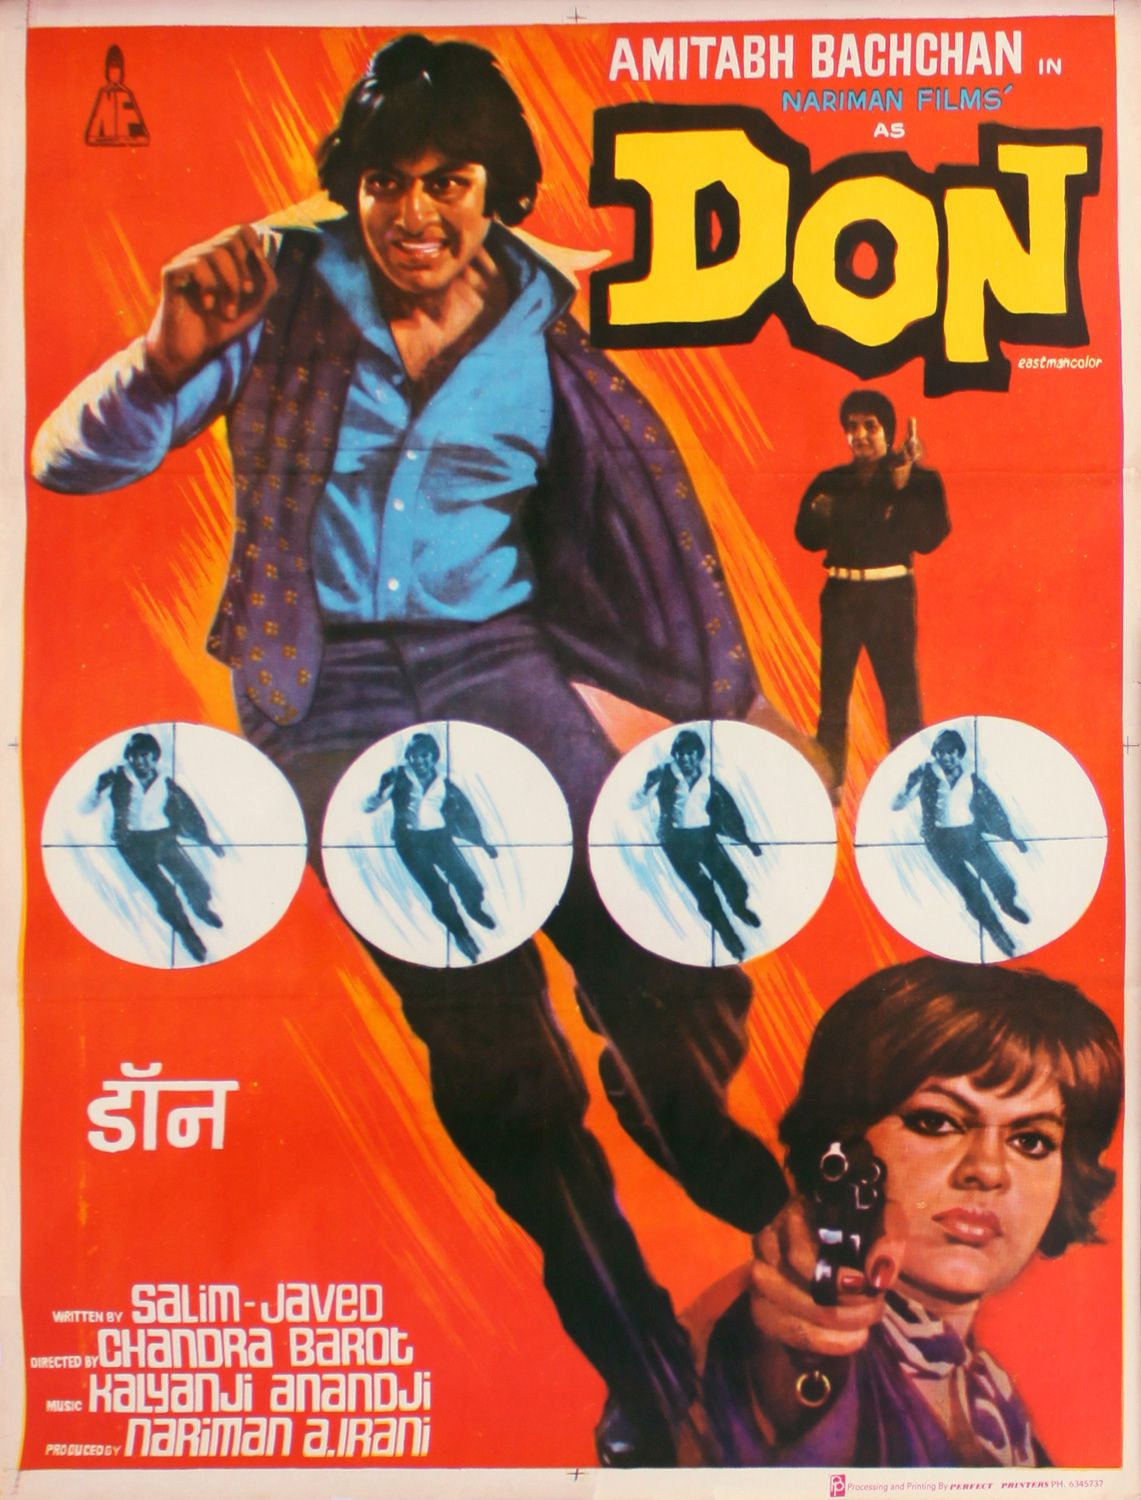 Amitabh Bachchan Collection Old Bollywood Movies Bollywood Posters Movie Posters Vintage